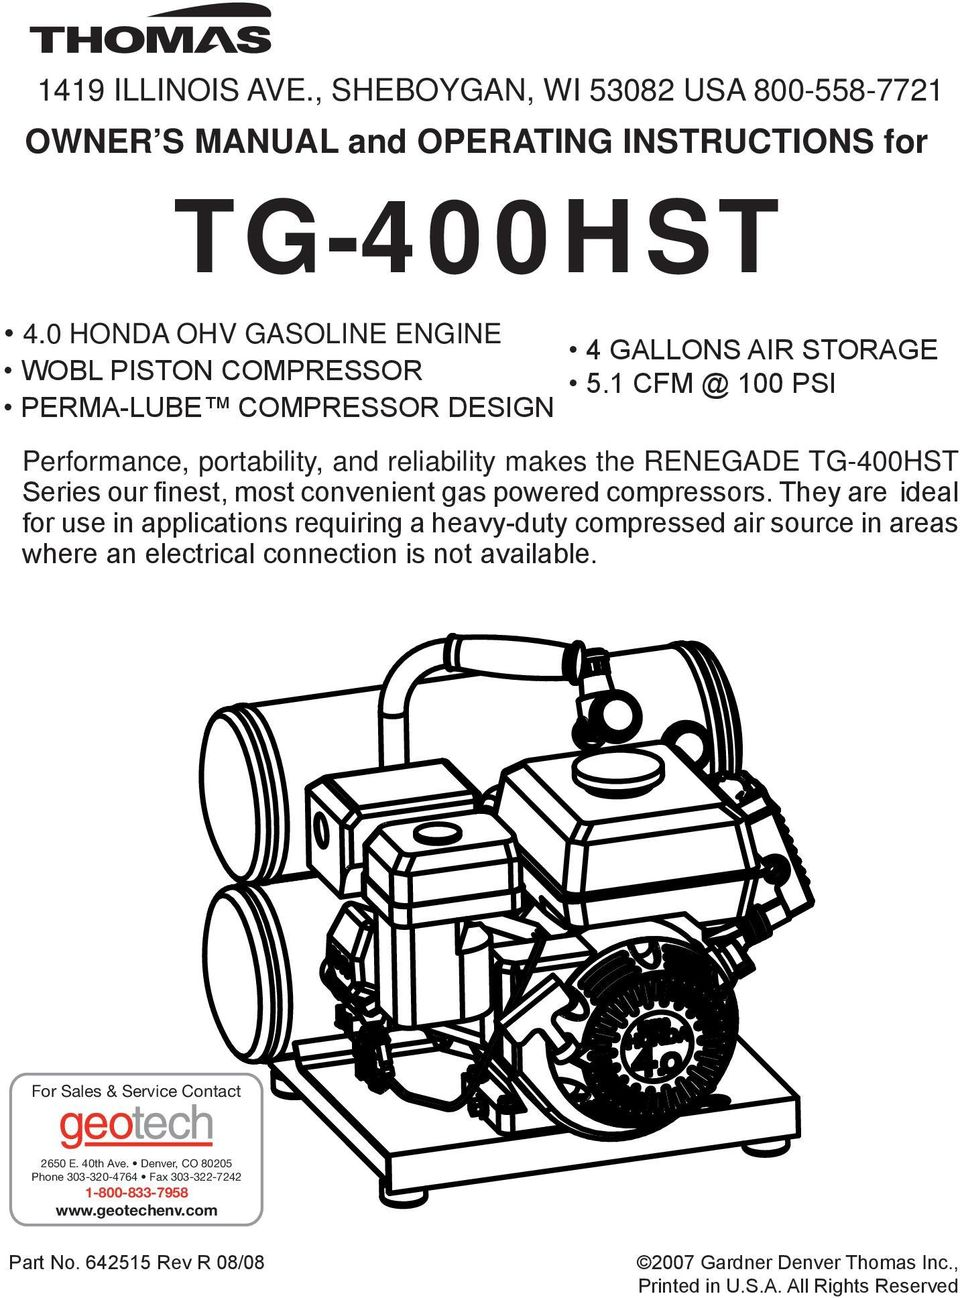 1 CFM @ 100 PSI Performance, portability, and reliability makes the RENEGADE TG-400HST Series our finest, most convenient gas powered compressors.